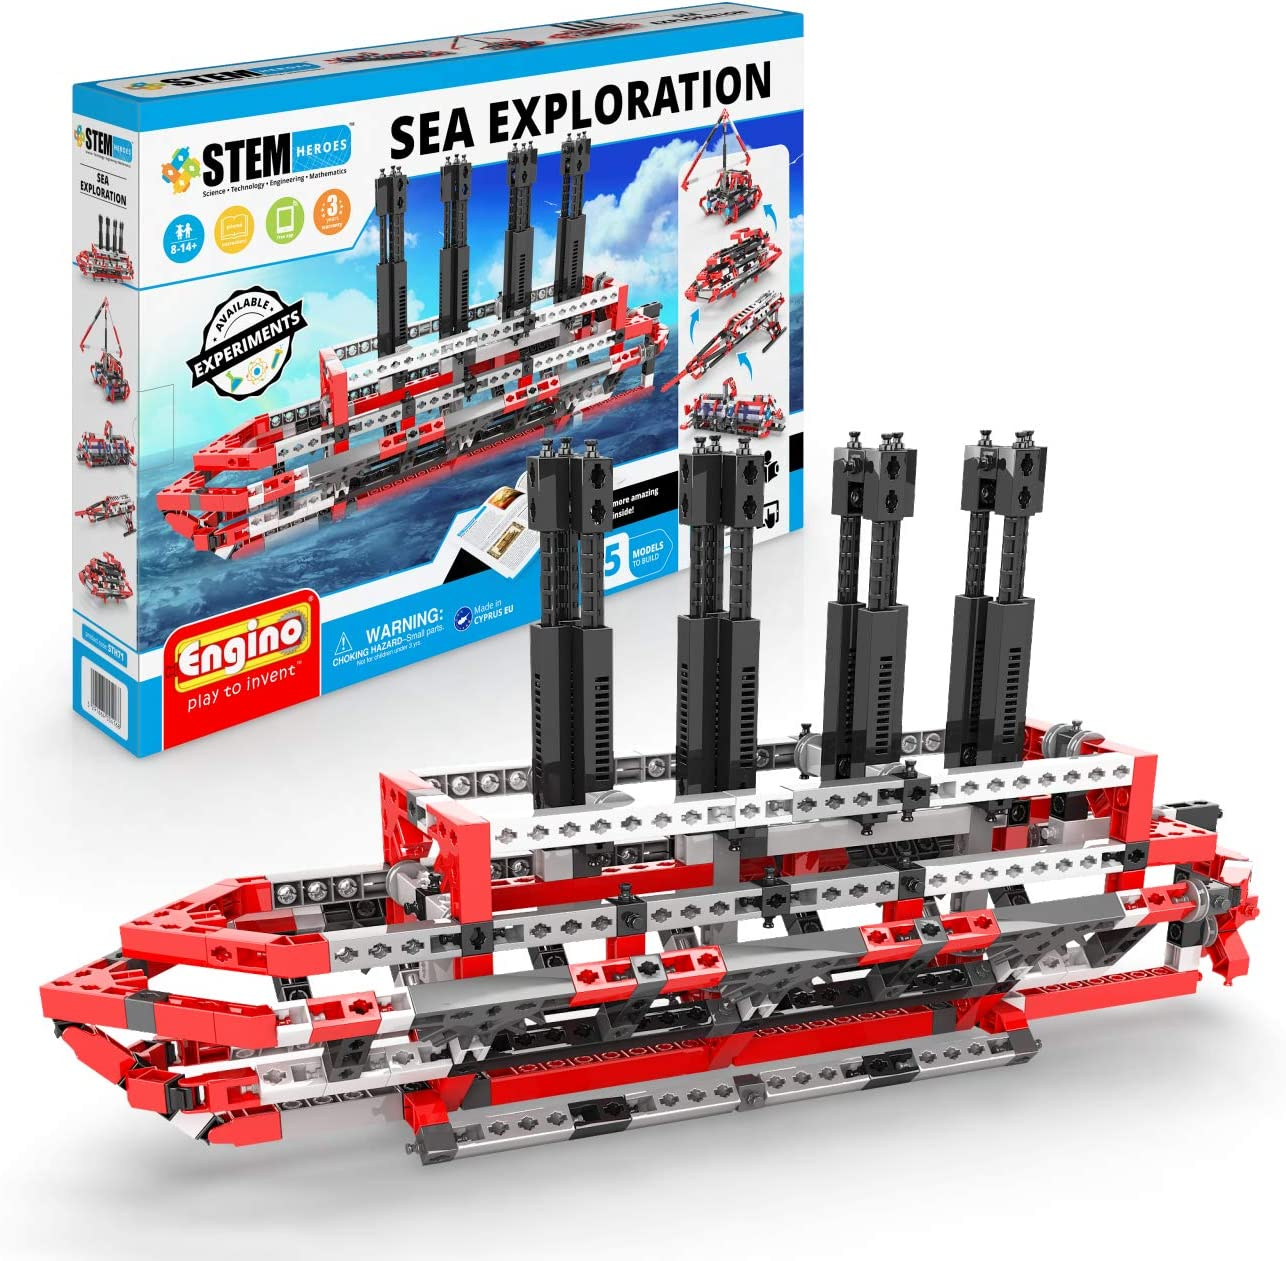 Engino - STEM Heroes Toys | Learning About: Sea Exploration - Building Toy & Learning Activities & Experiments (5 Models Options) | Perfect for Home Learning